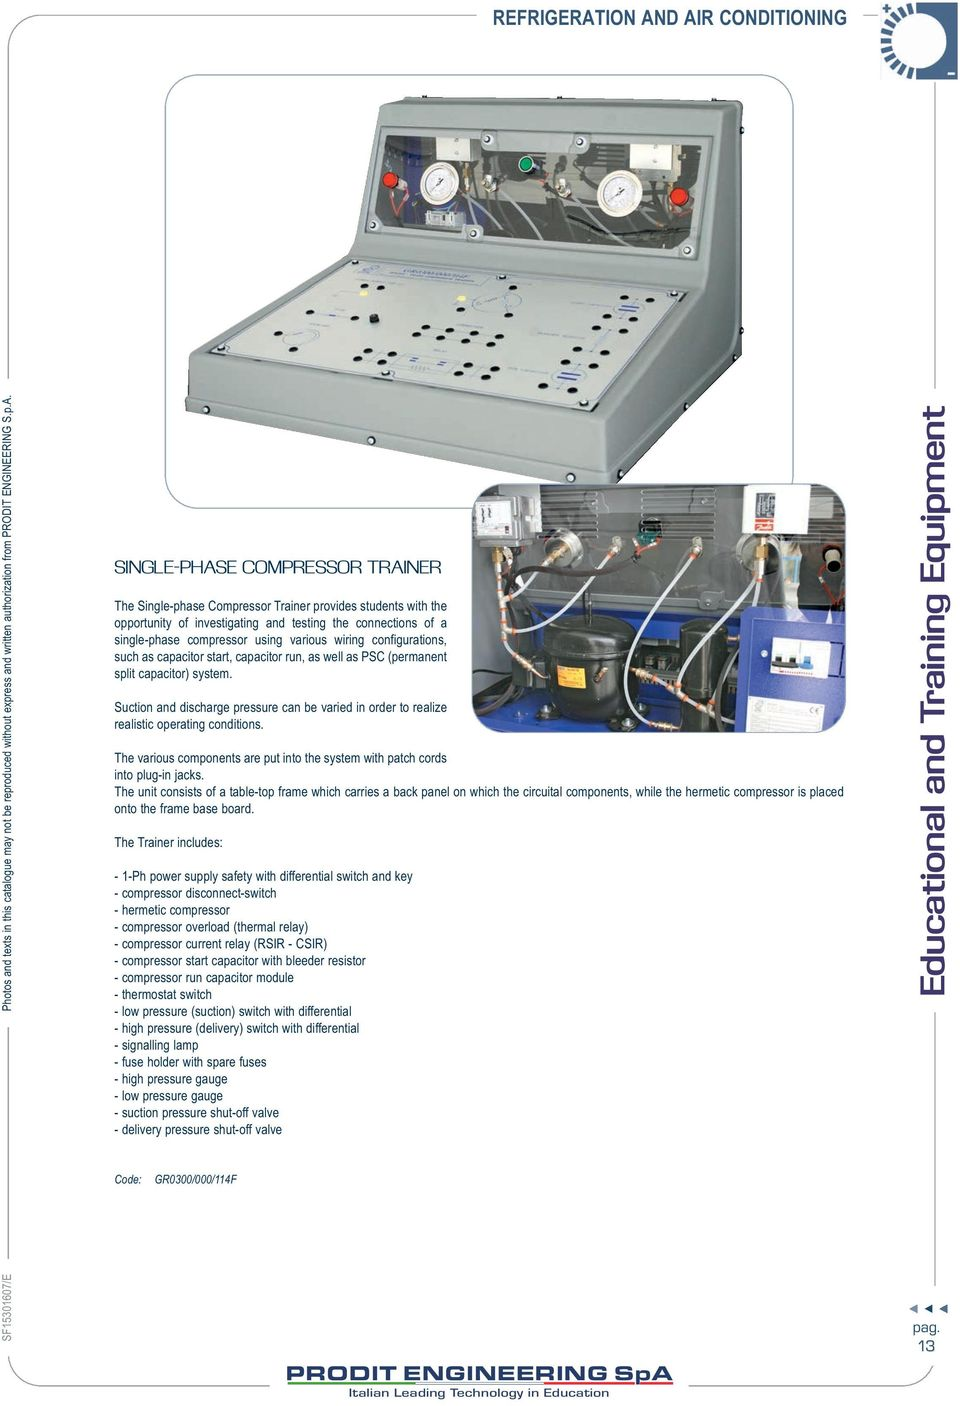 medium resolution of suction and discharge pressure can be varied in order to realize realistic operating conditions the